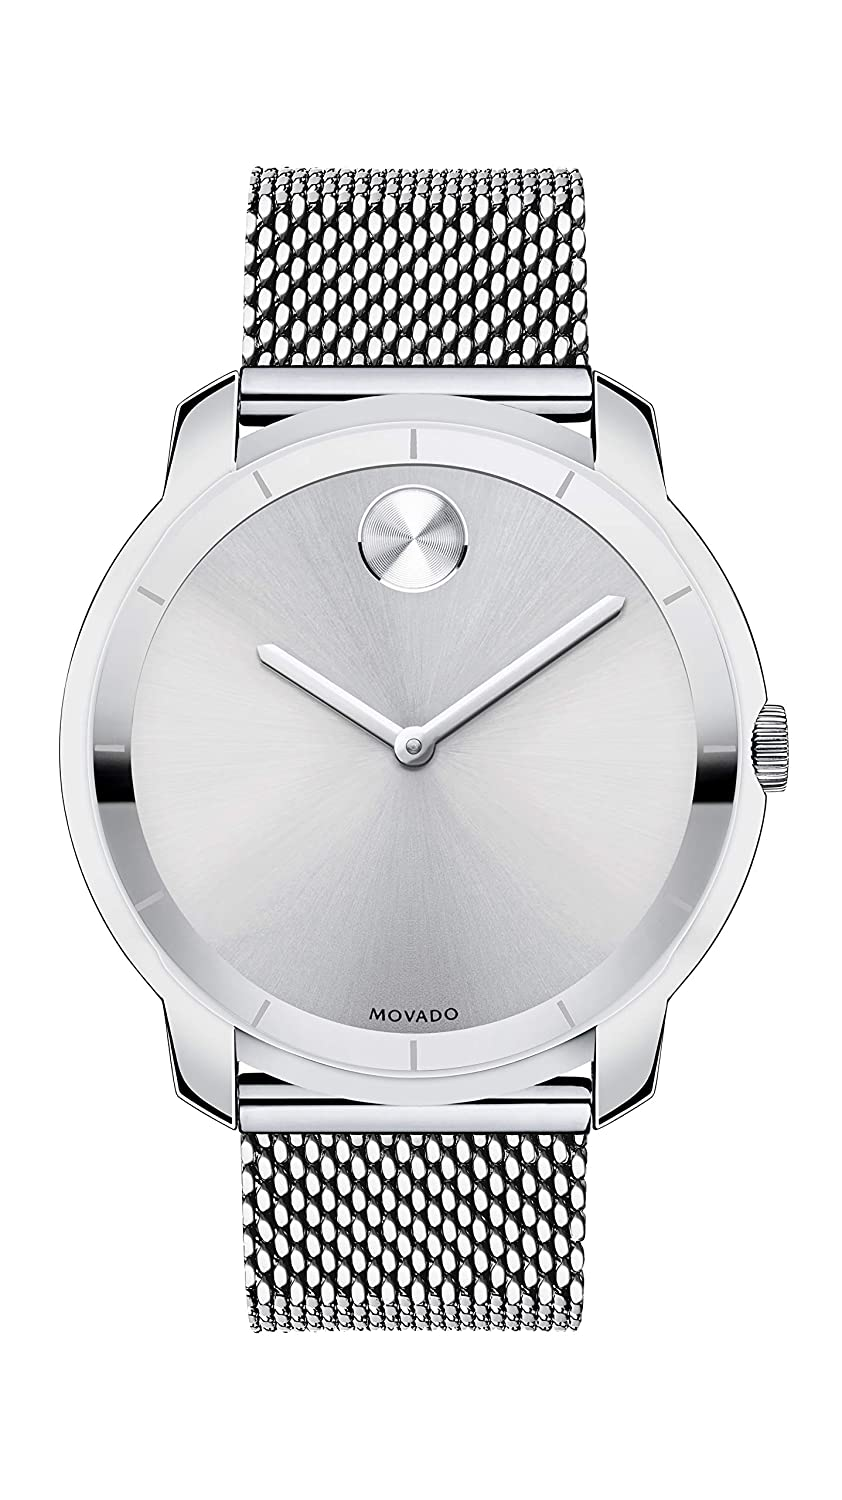 3859ab9bb Amazon.com: Movado Men's Bold Thin Stainless Steel Watch with a Printed  Index Dial, Silver (Model 3600260): Watches